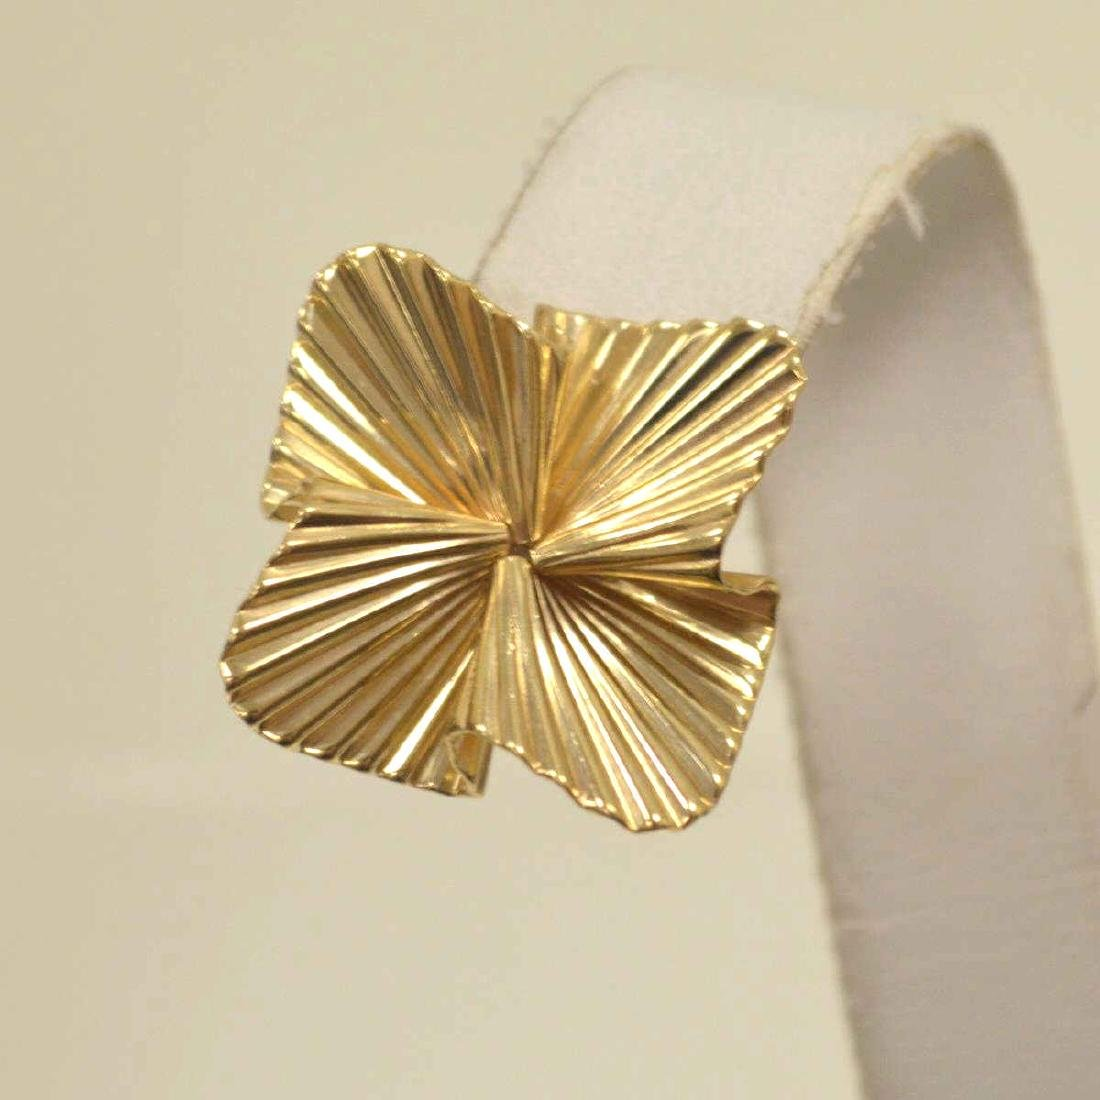 14kt yellow gold fluted ribbon earrings by Tiffany - 2